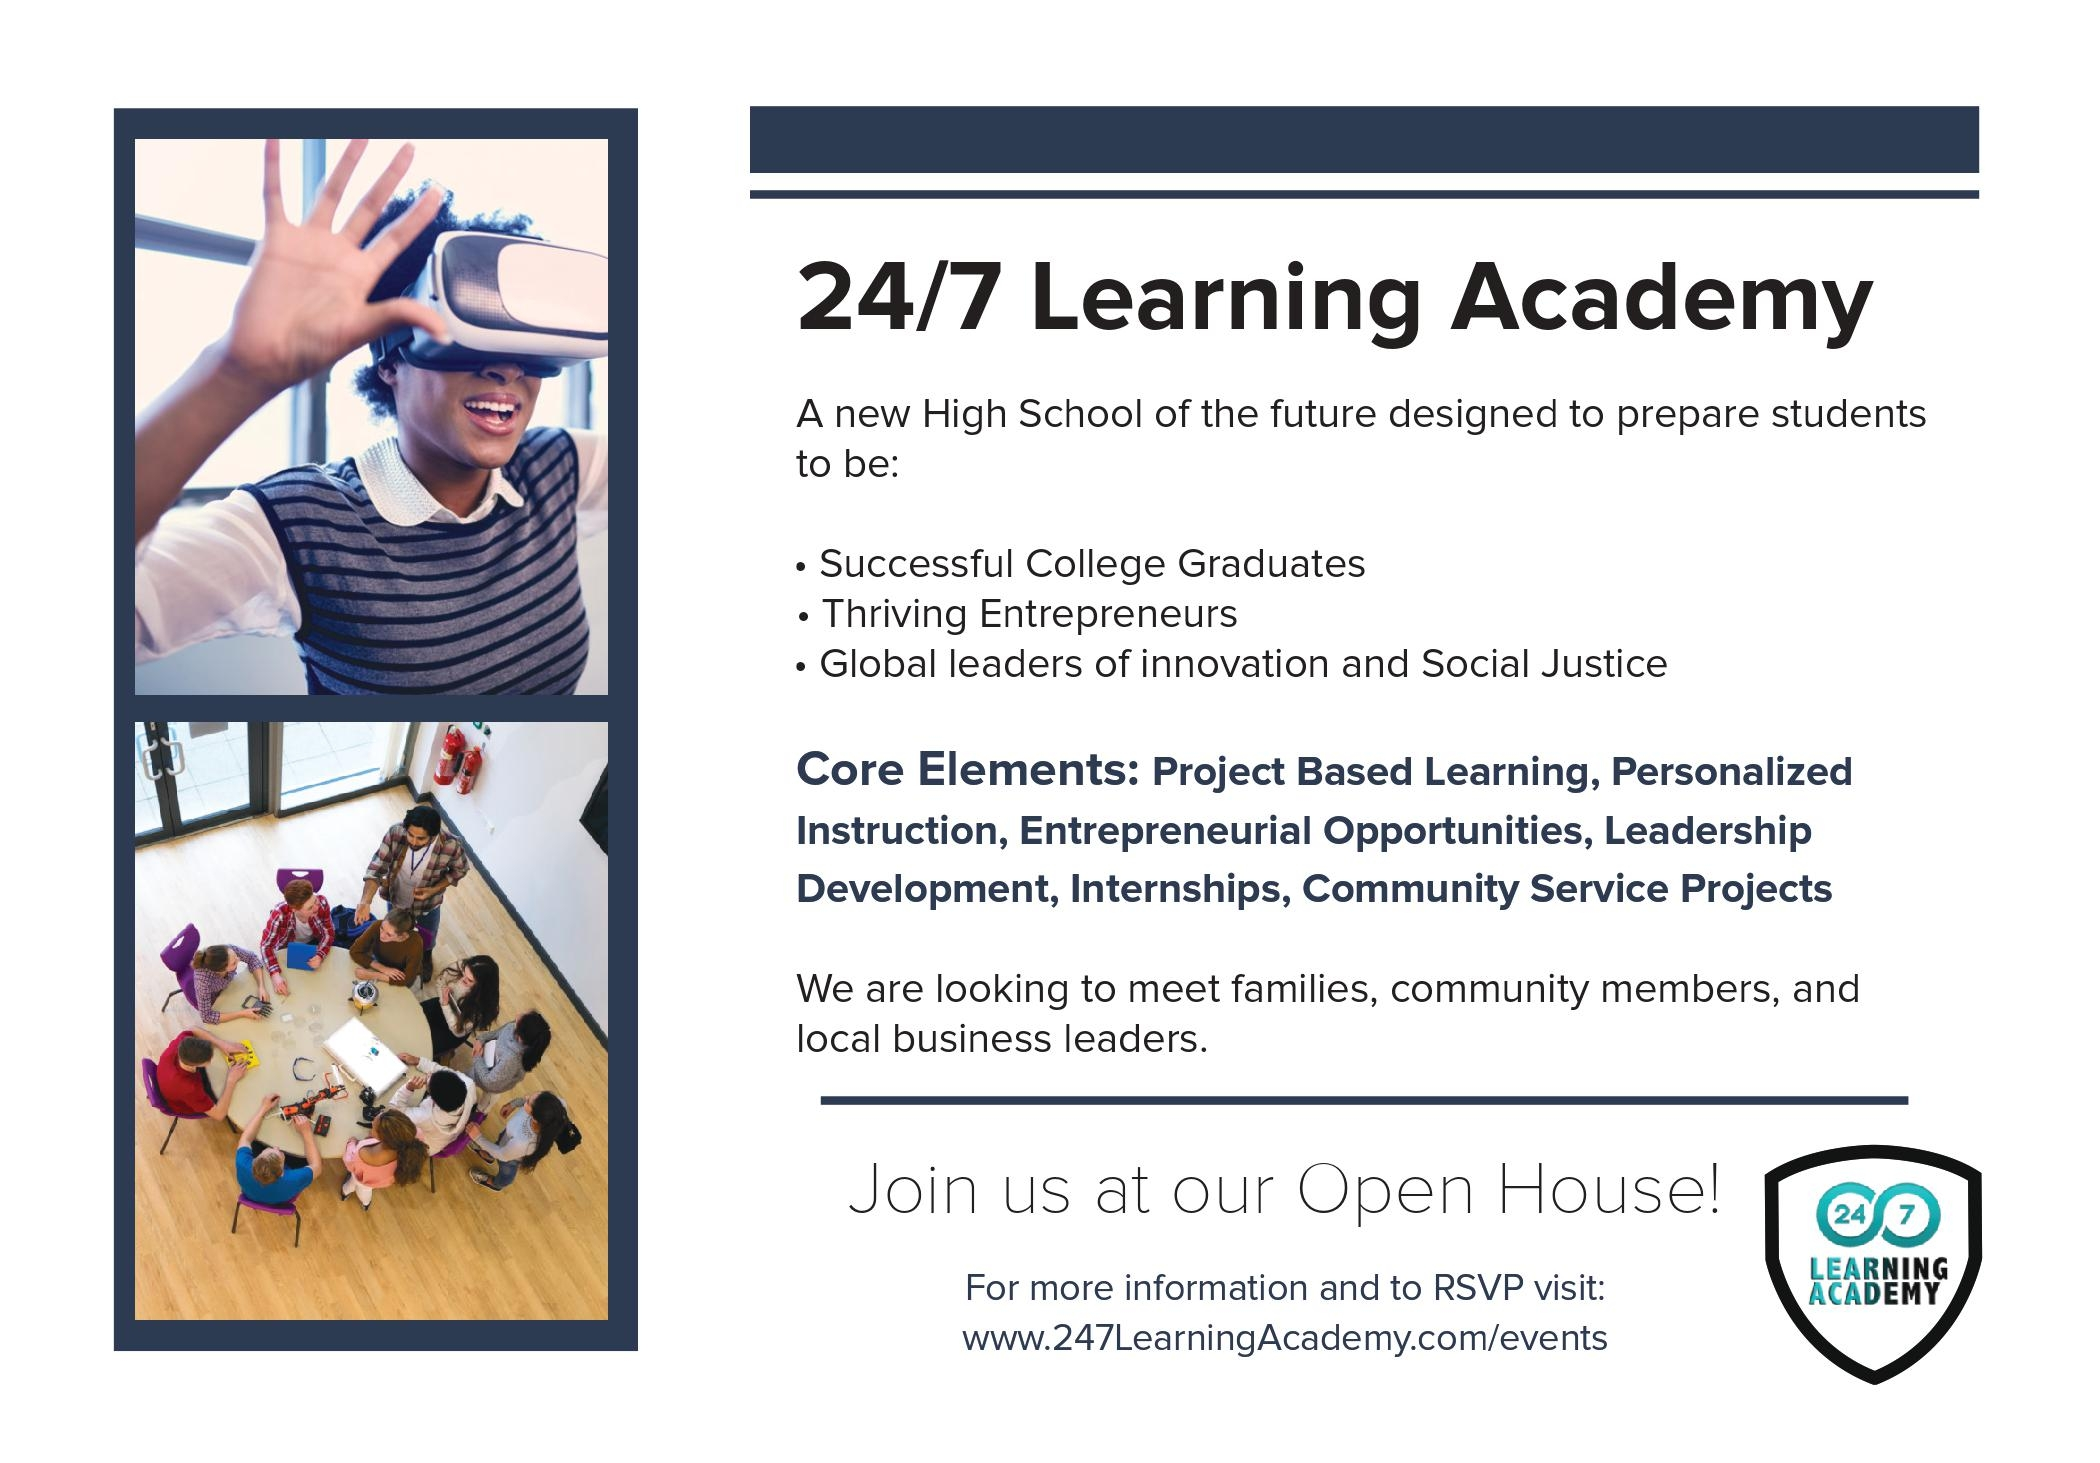 24/7 Learning Academy, A New Private High School in Orlando Florida